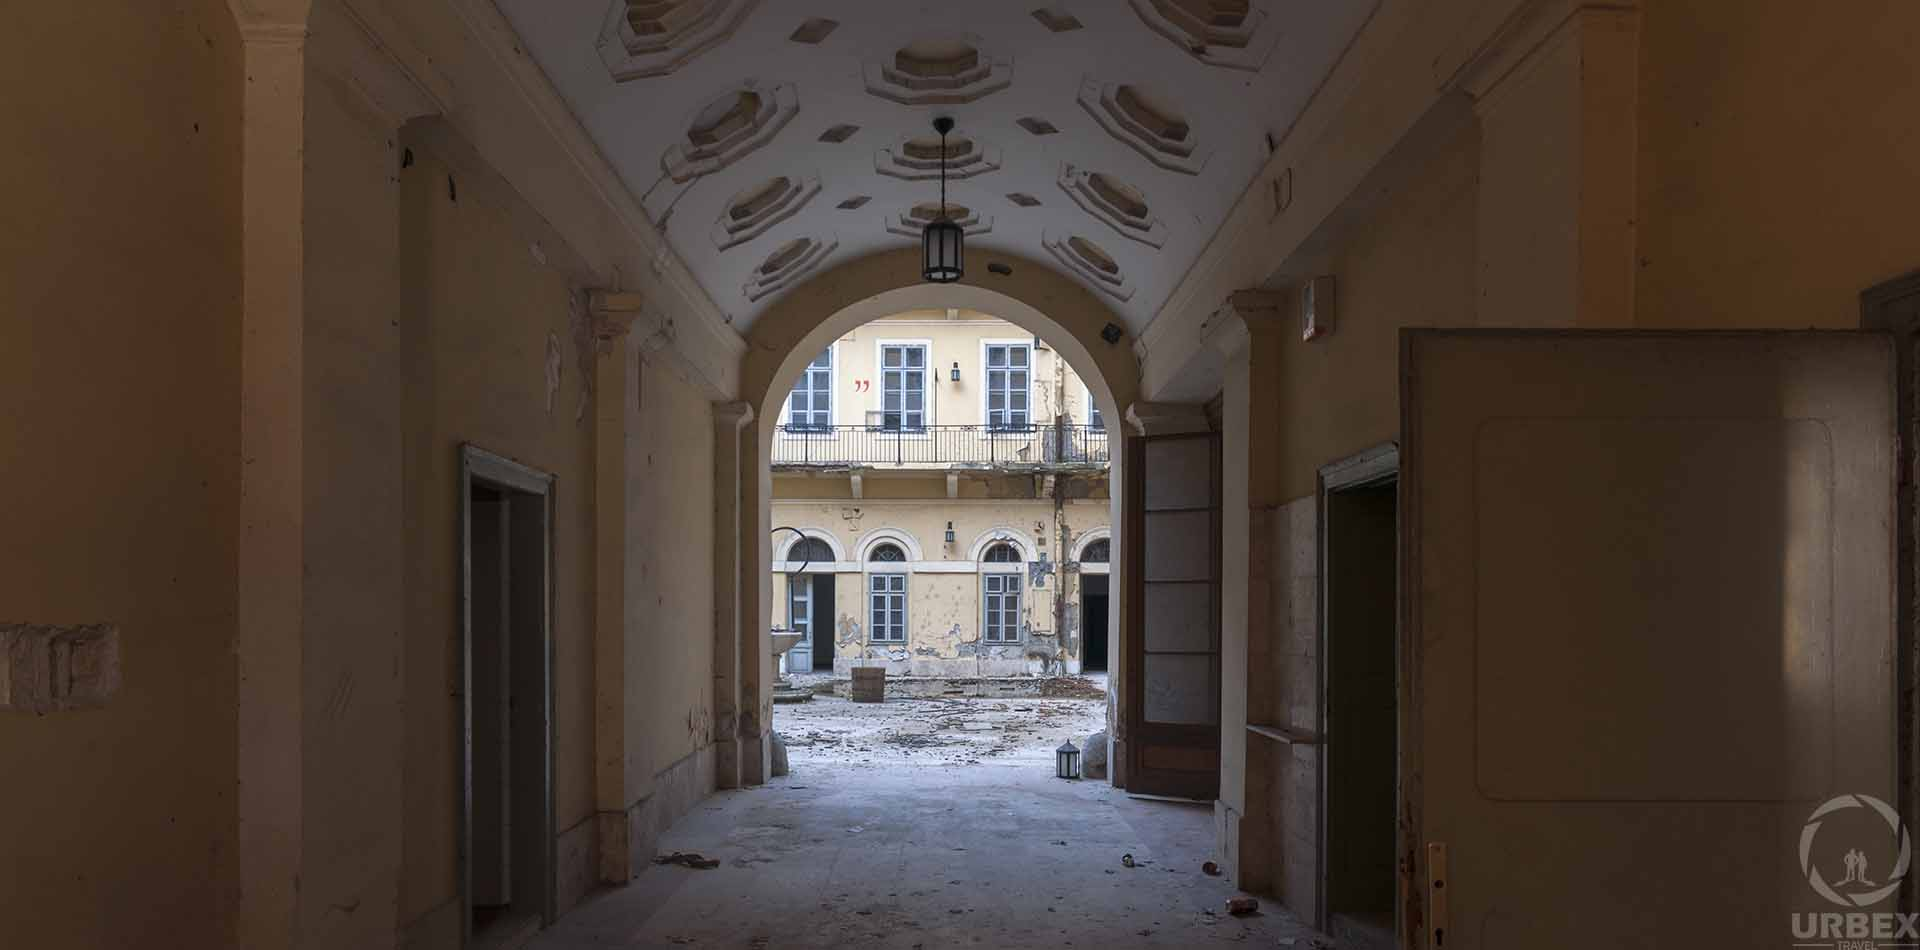 What is urbex?